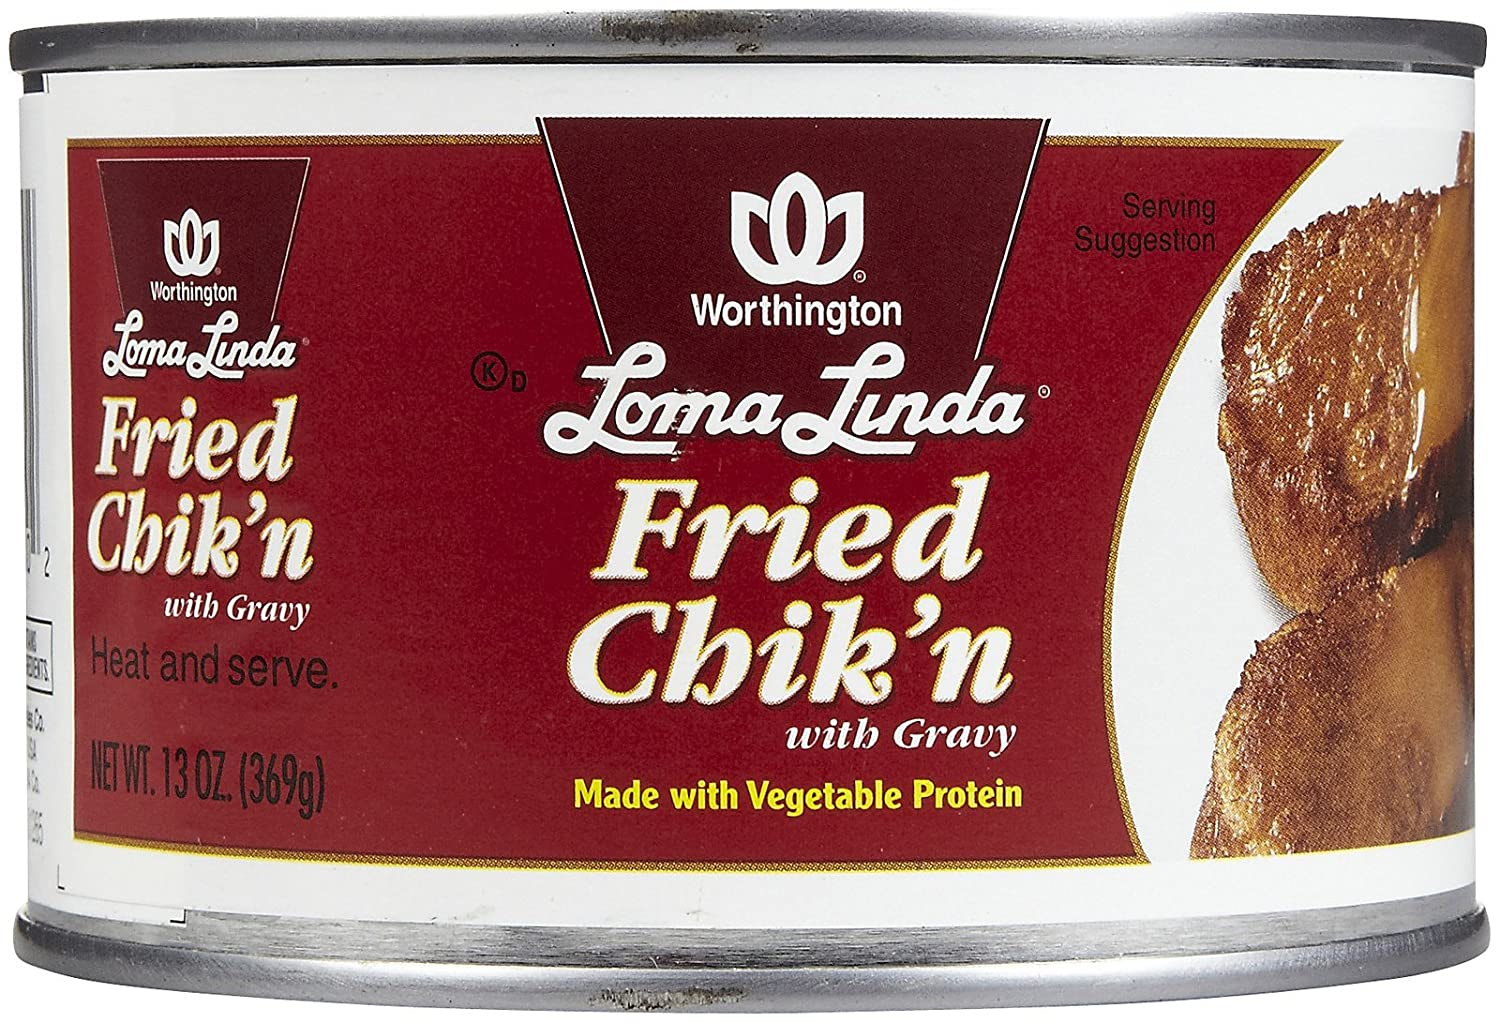 Loma Linda Fried Chicken with Gravey - 13 oz - 12 Pack: Amazon.com ...